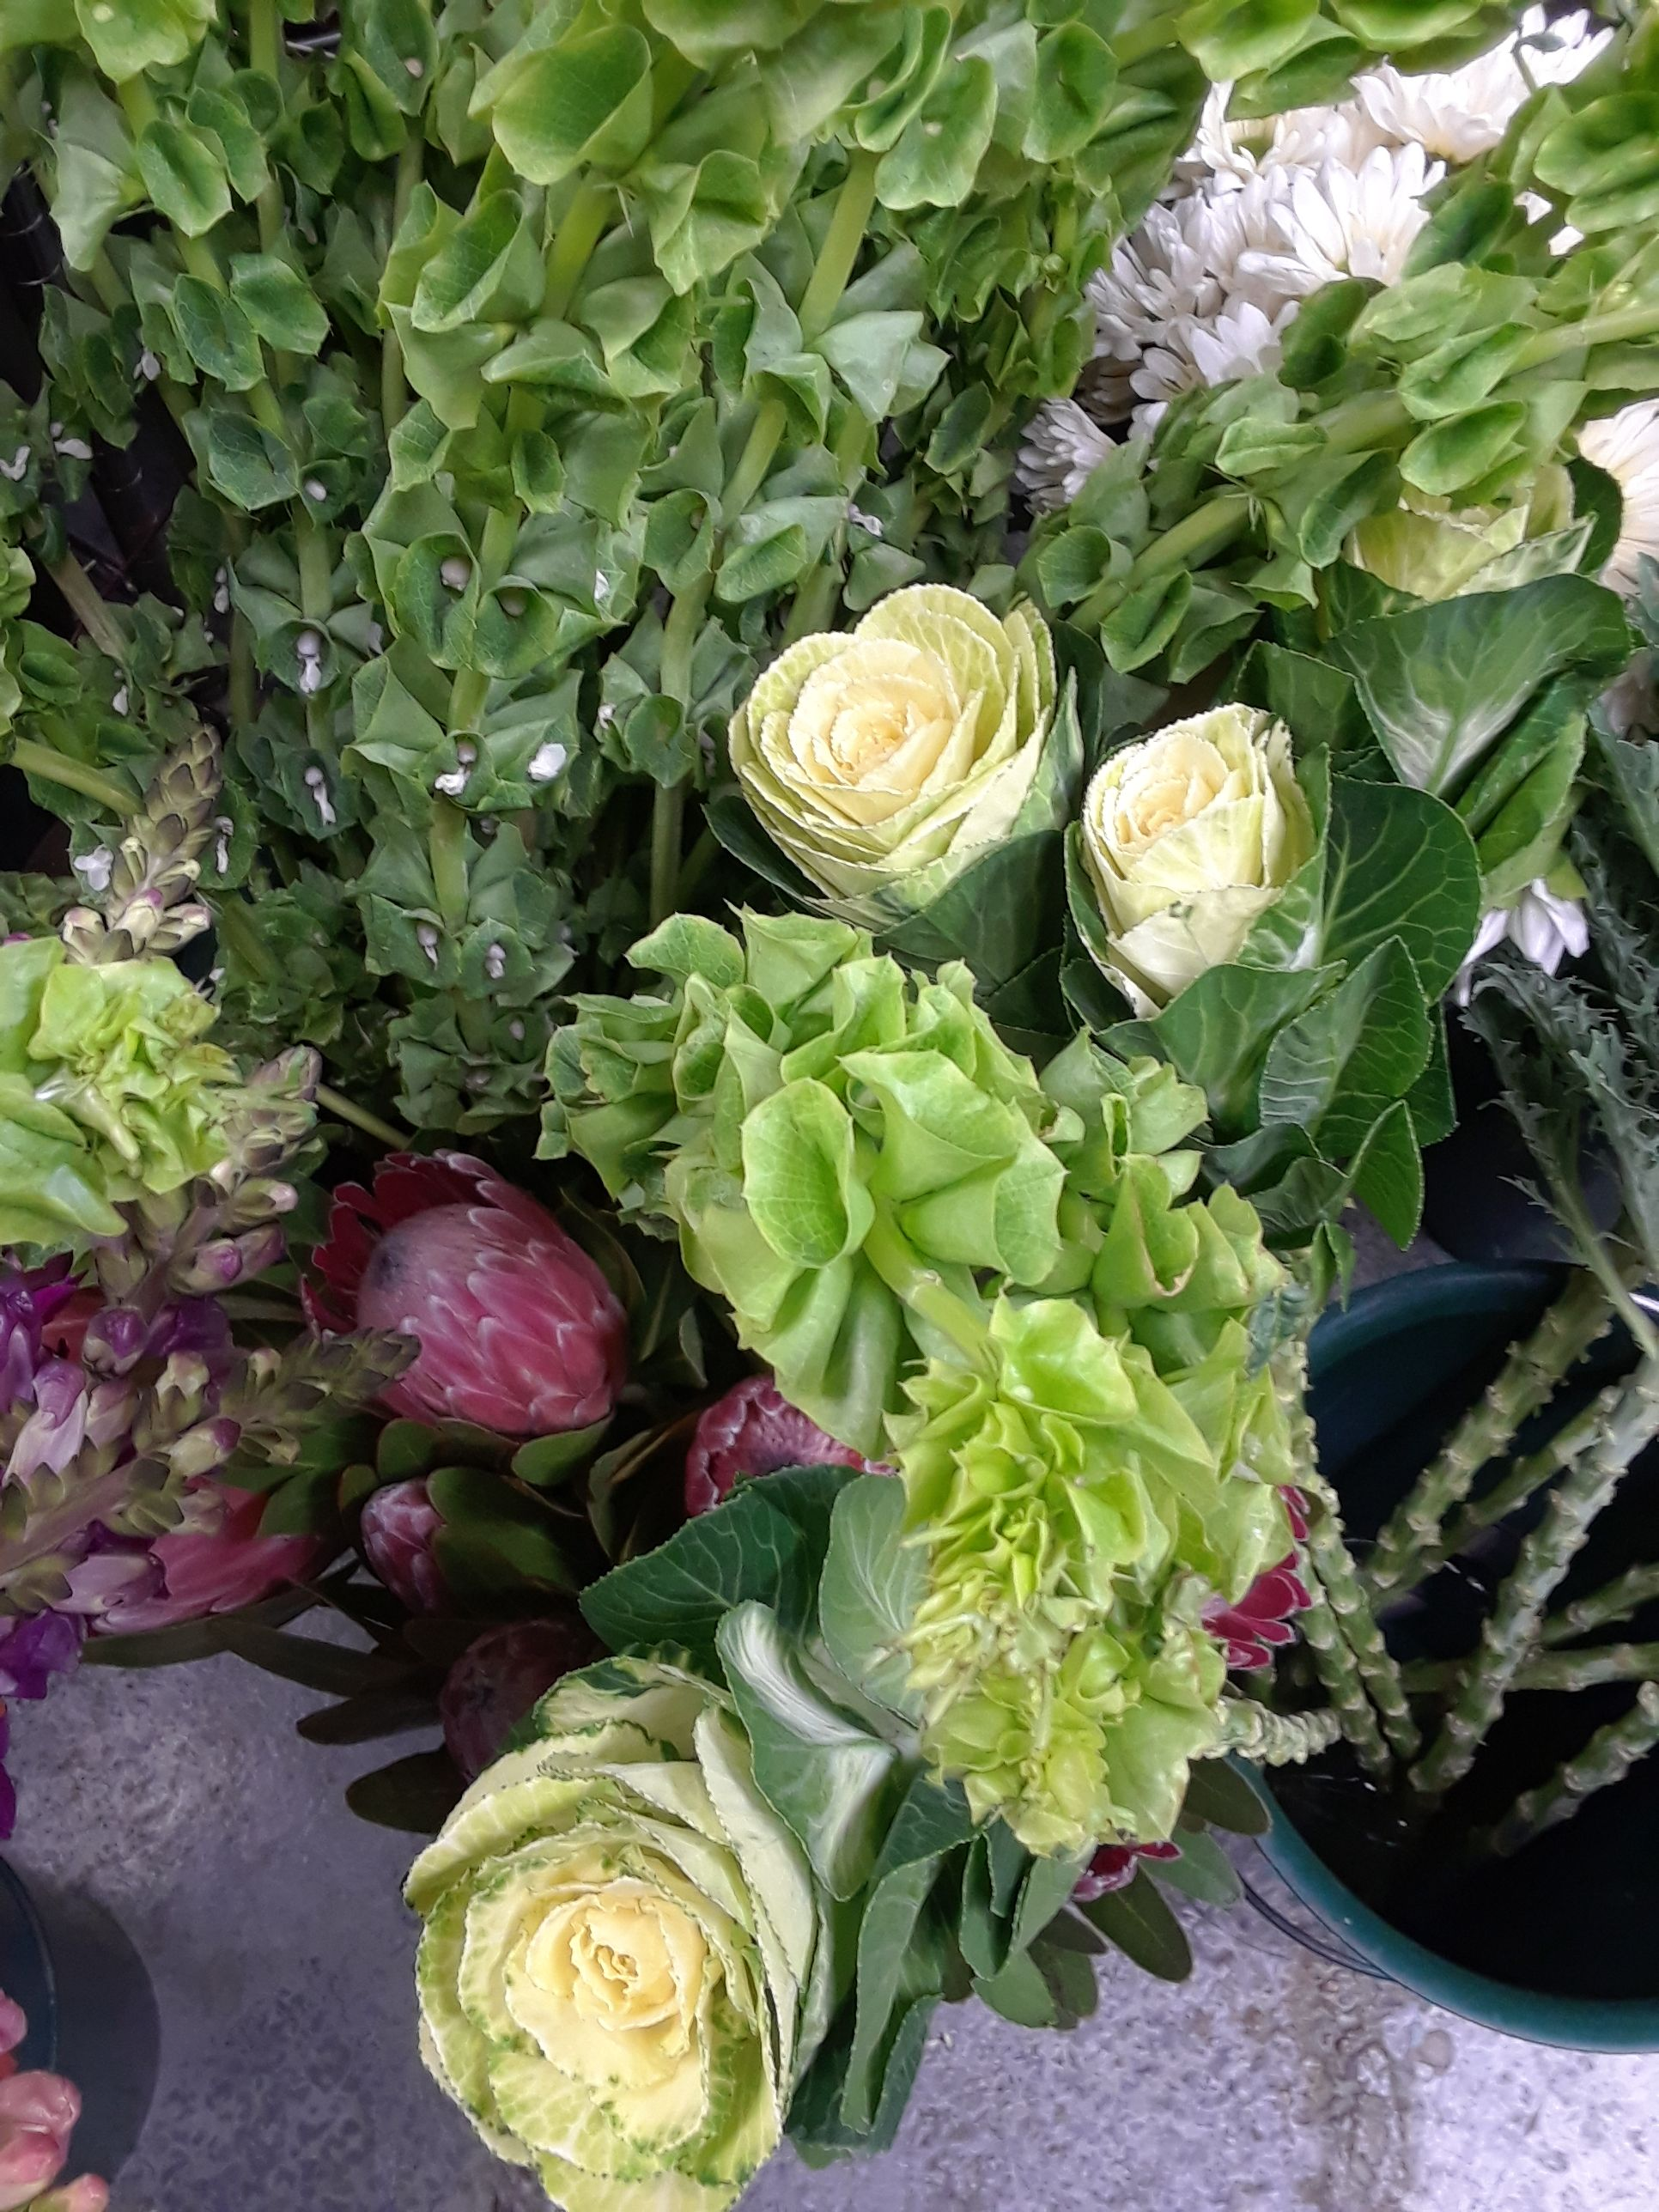 Bells Of Ireland Kale And Protea With Images Flowers Flower Shop Floral Design